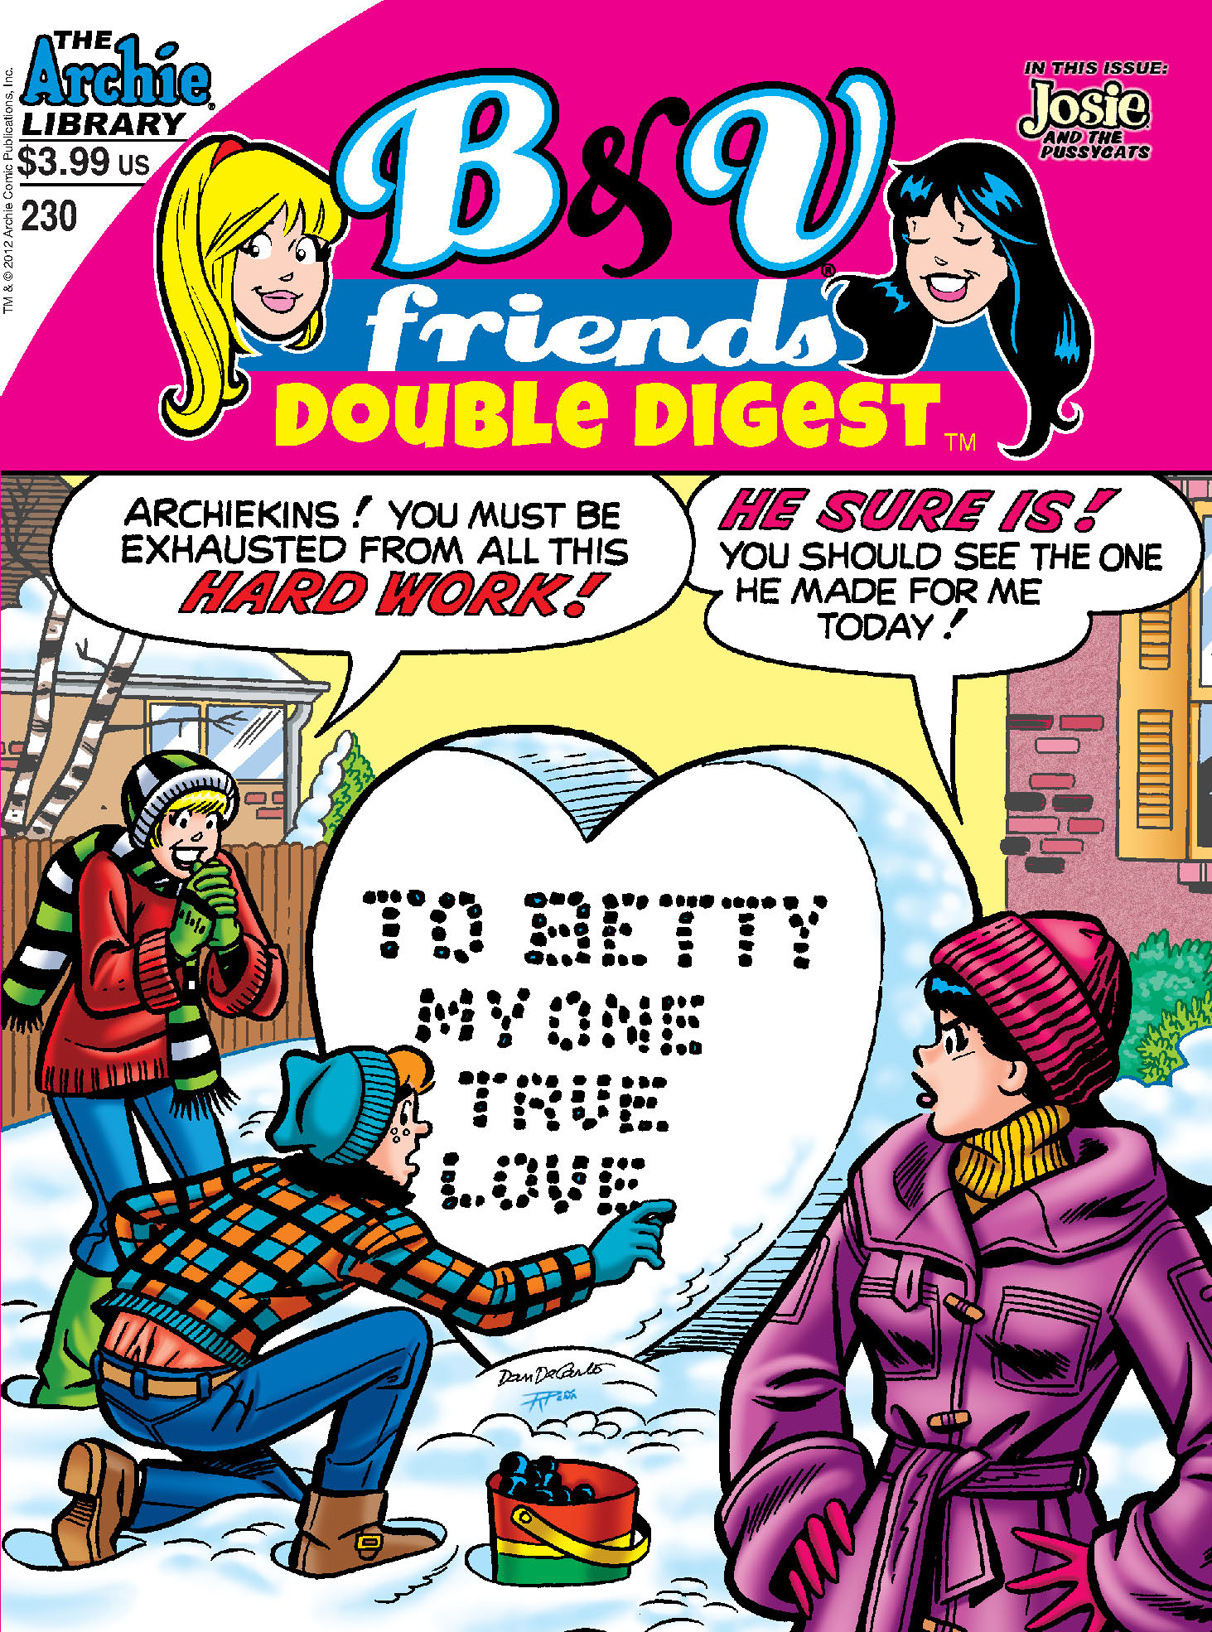 B&V Friends Double Digest #230 By: Various